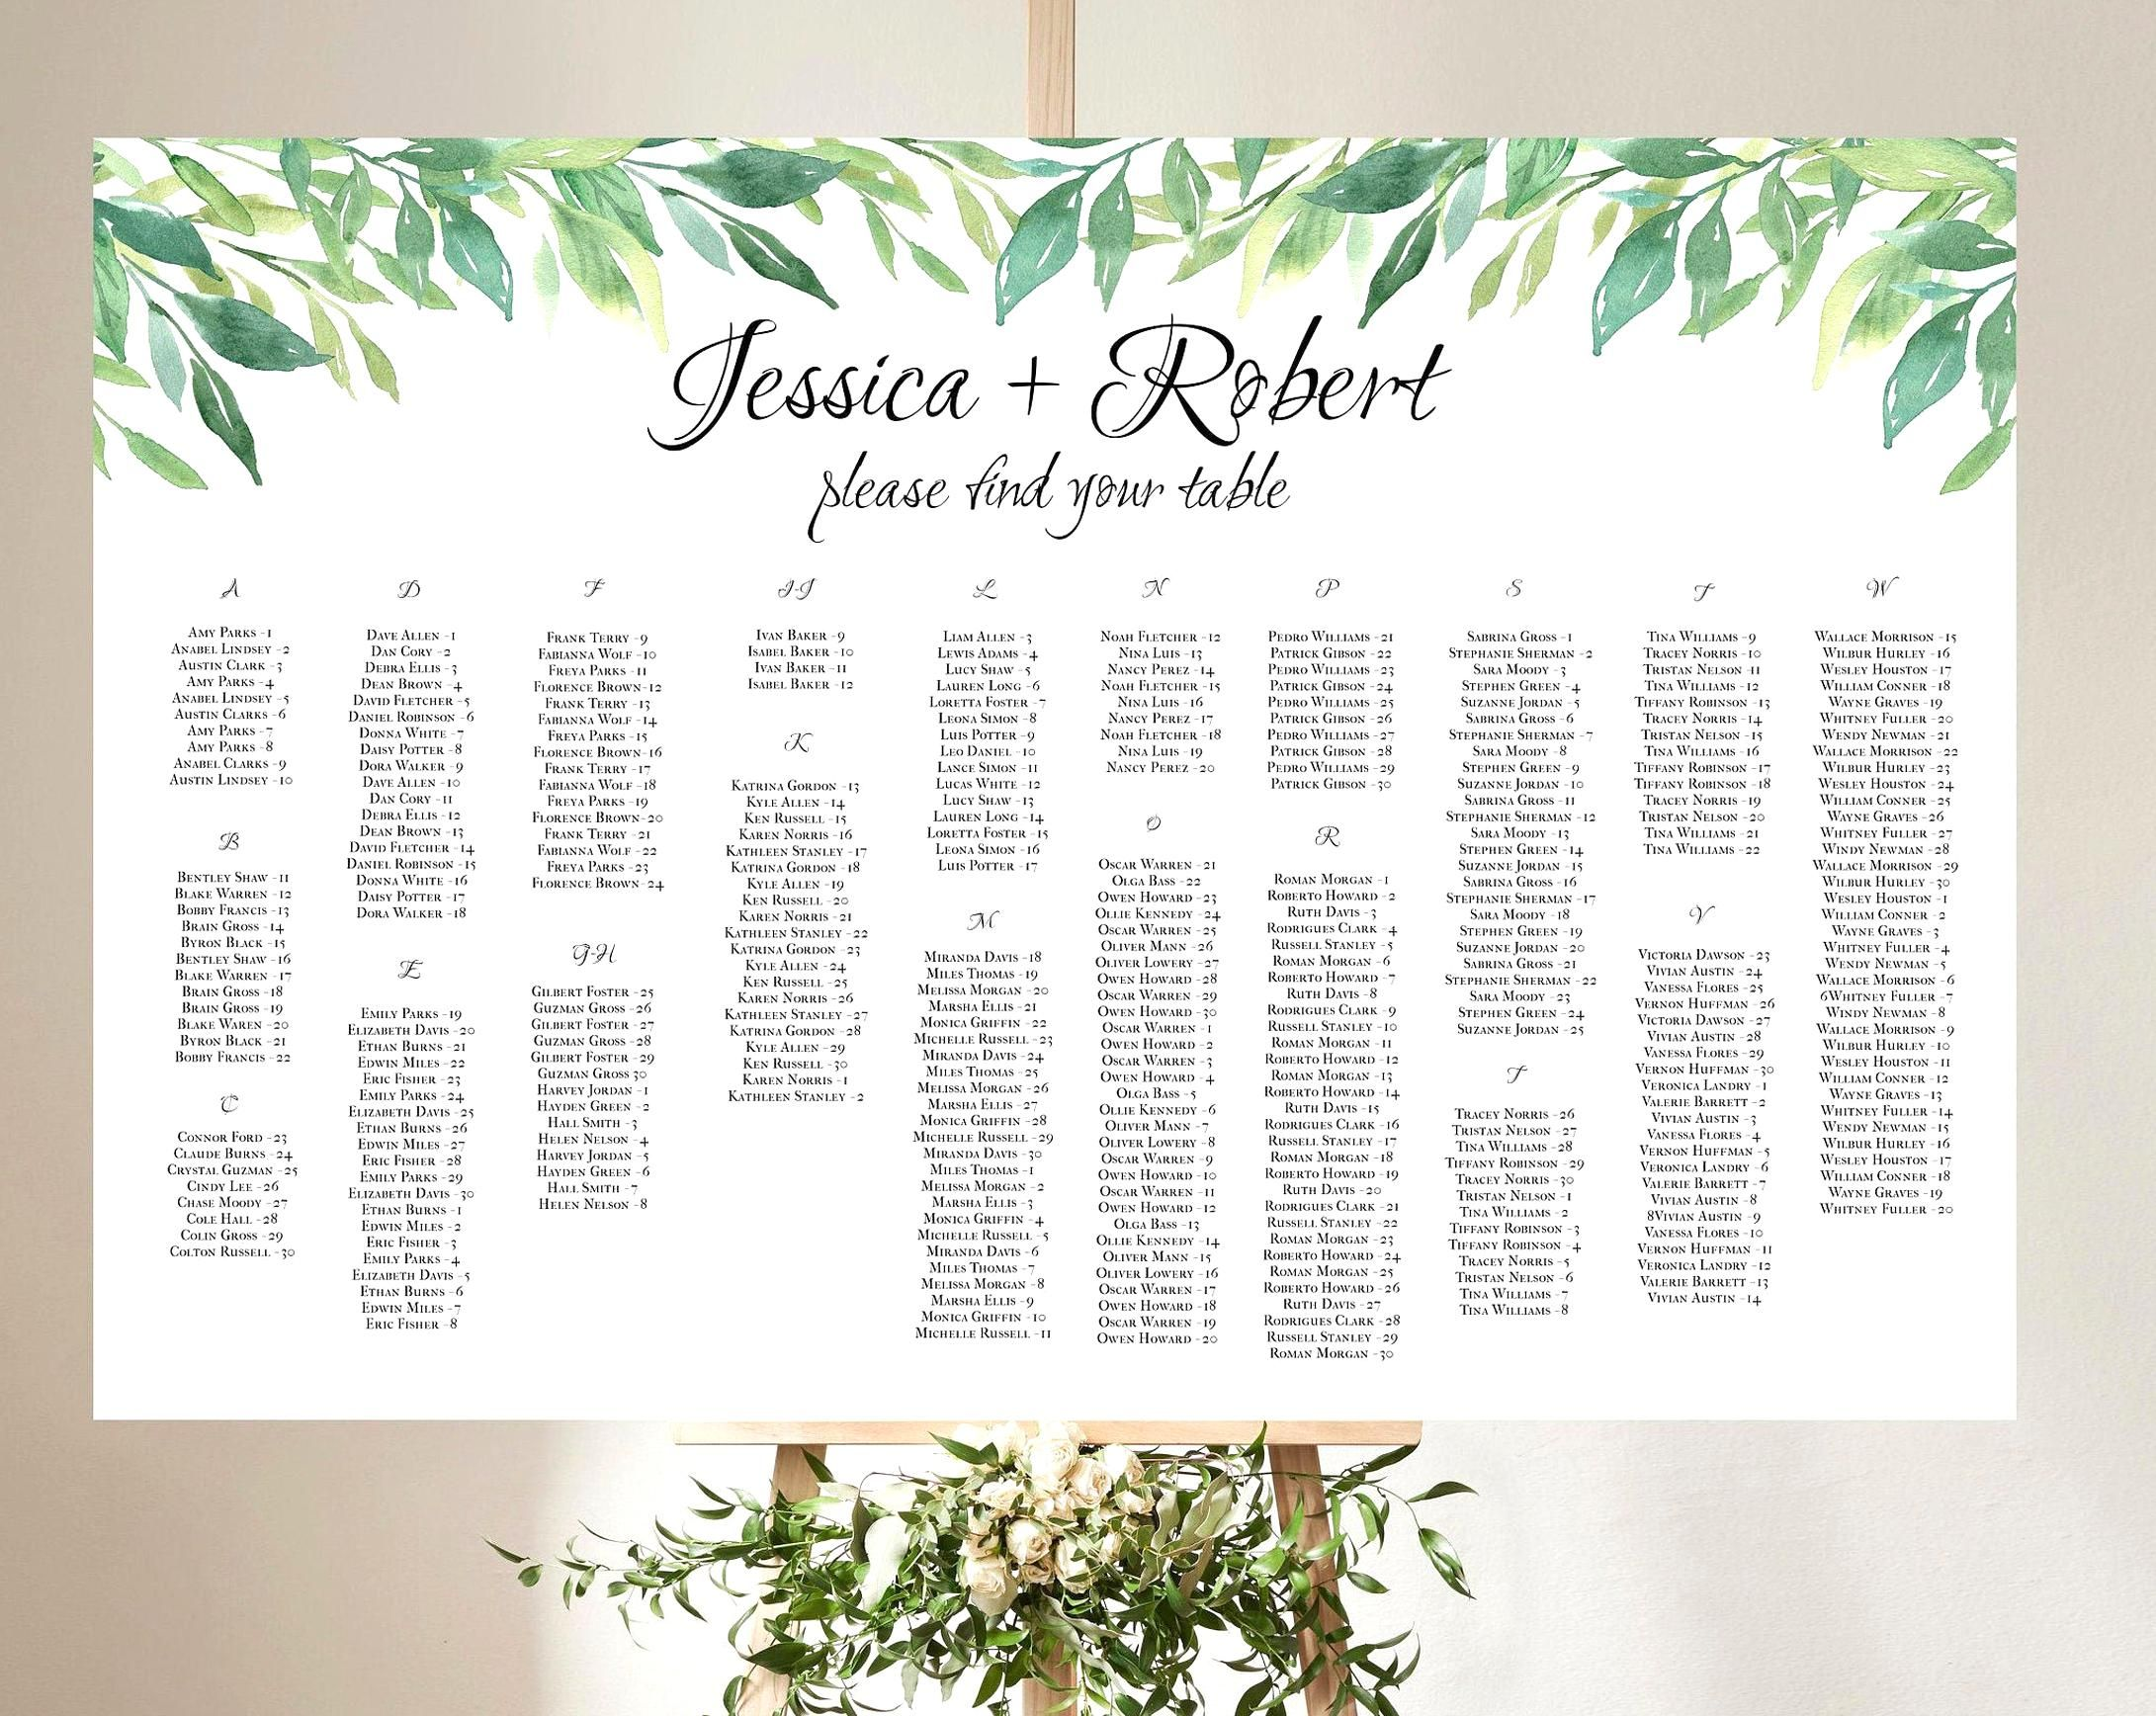 350 Names Alphabetical Seating Chart Landscape Wedding Seating Chart Large Seating Char In 2020 Seating Chart Wedding Seating Chart Template Alphabetical Seating Chart